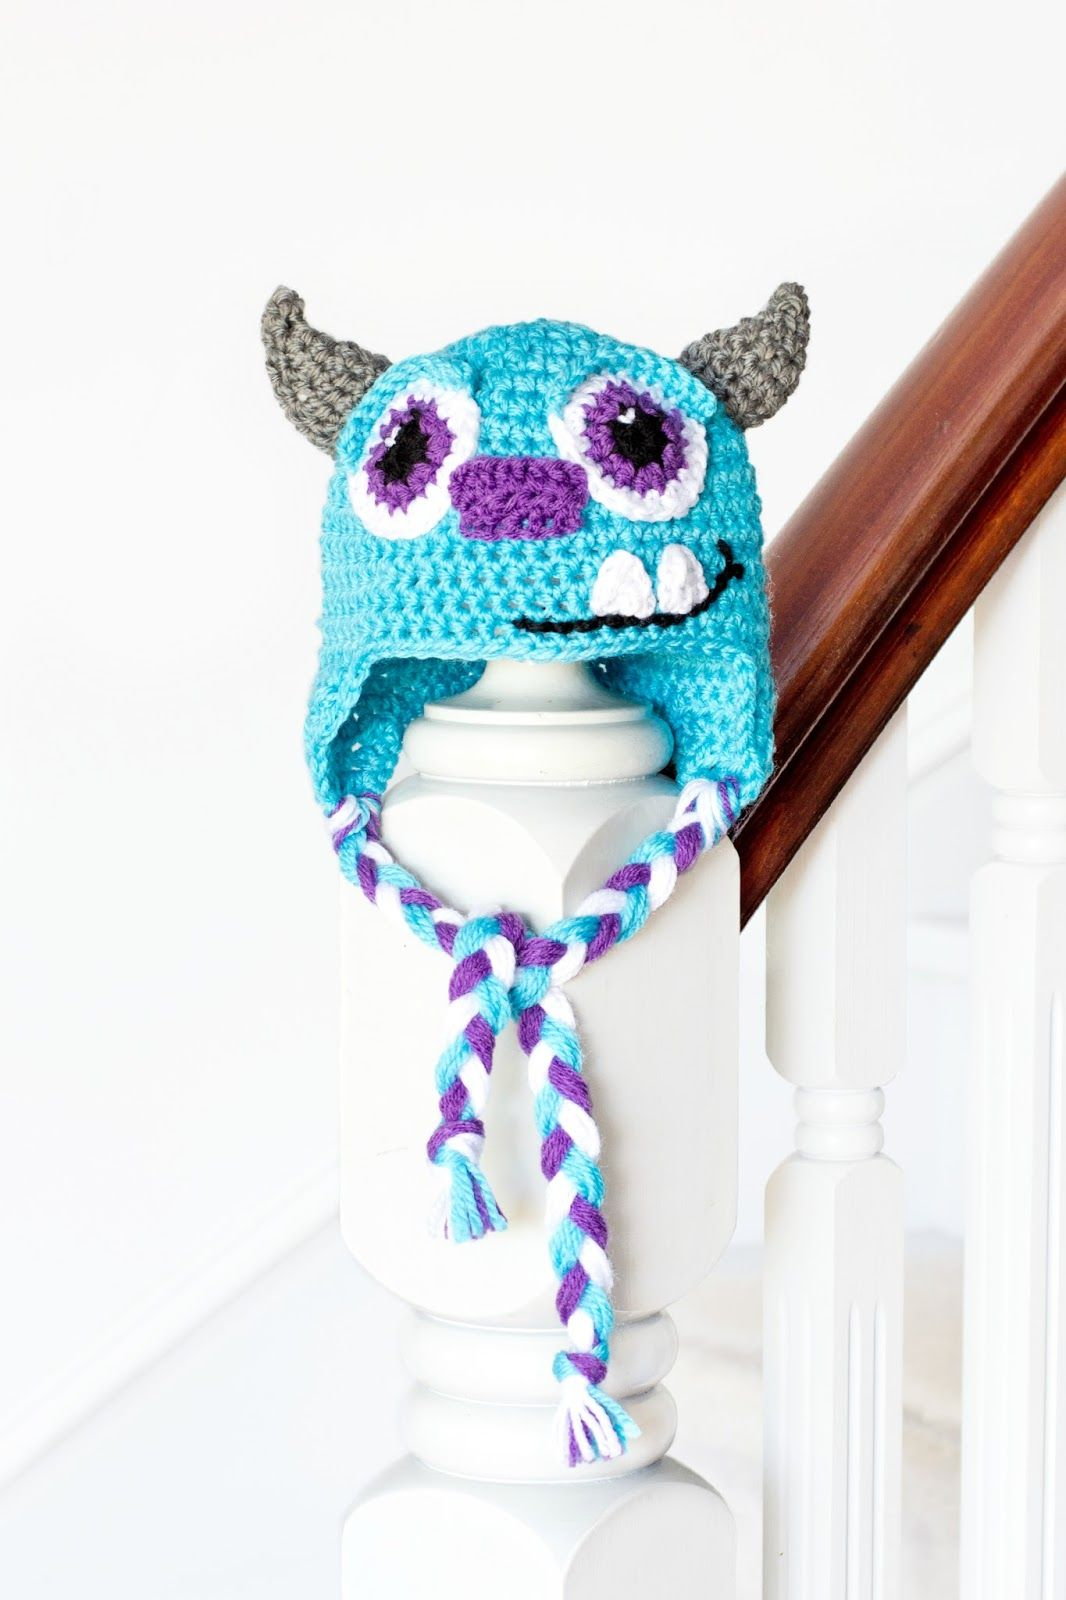 Monsters Inc. Sulley Inspired Baby Hat Crochet Pattern | Crochet ...